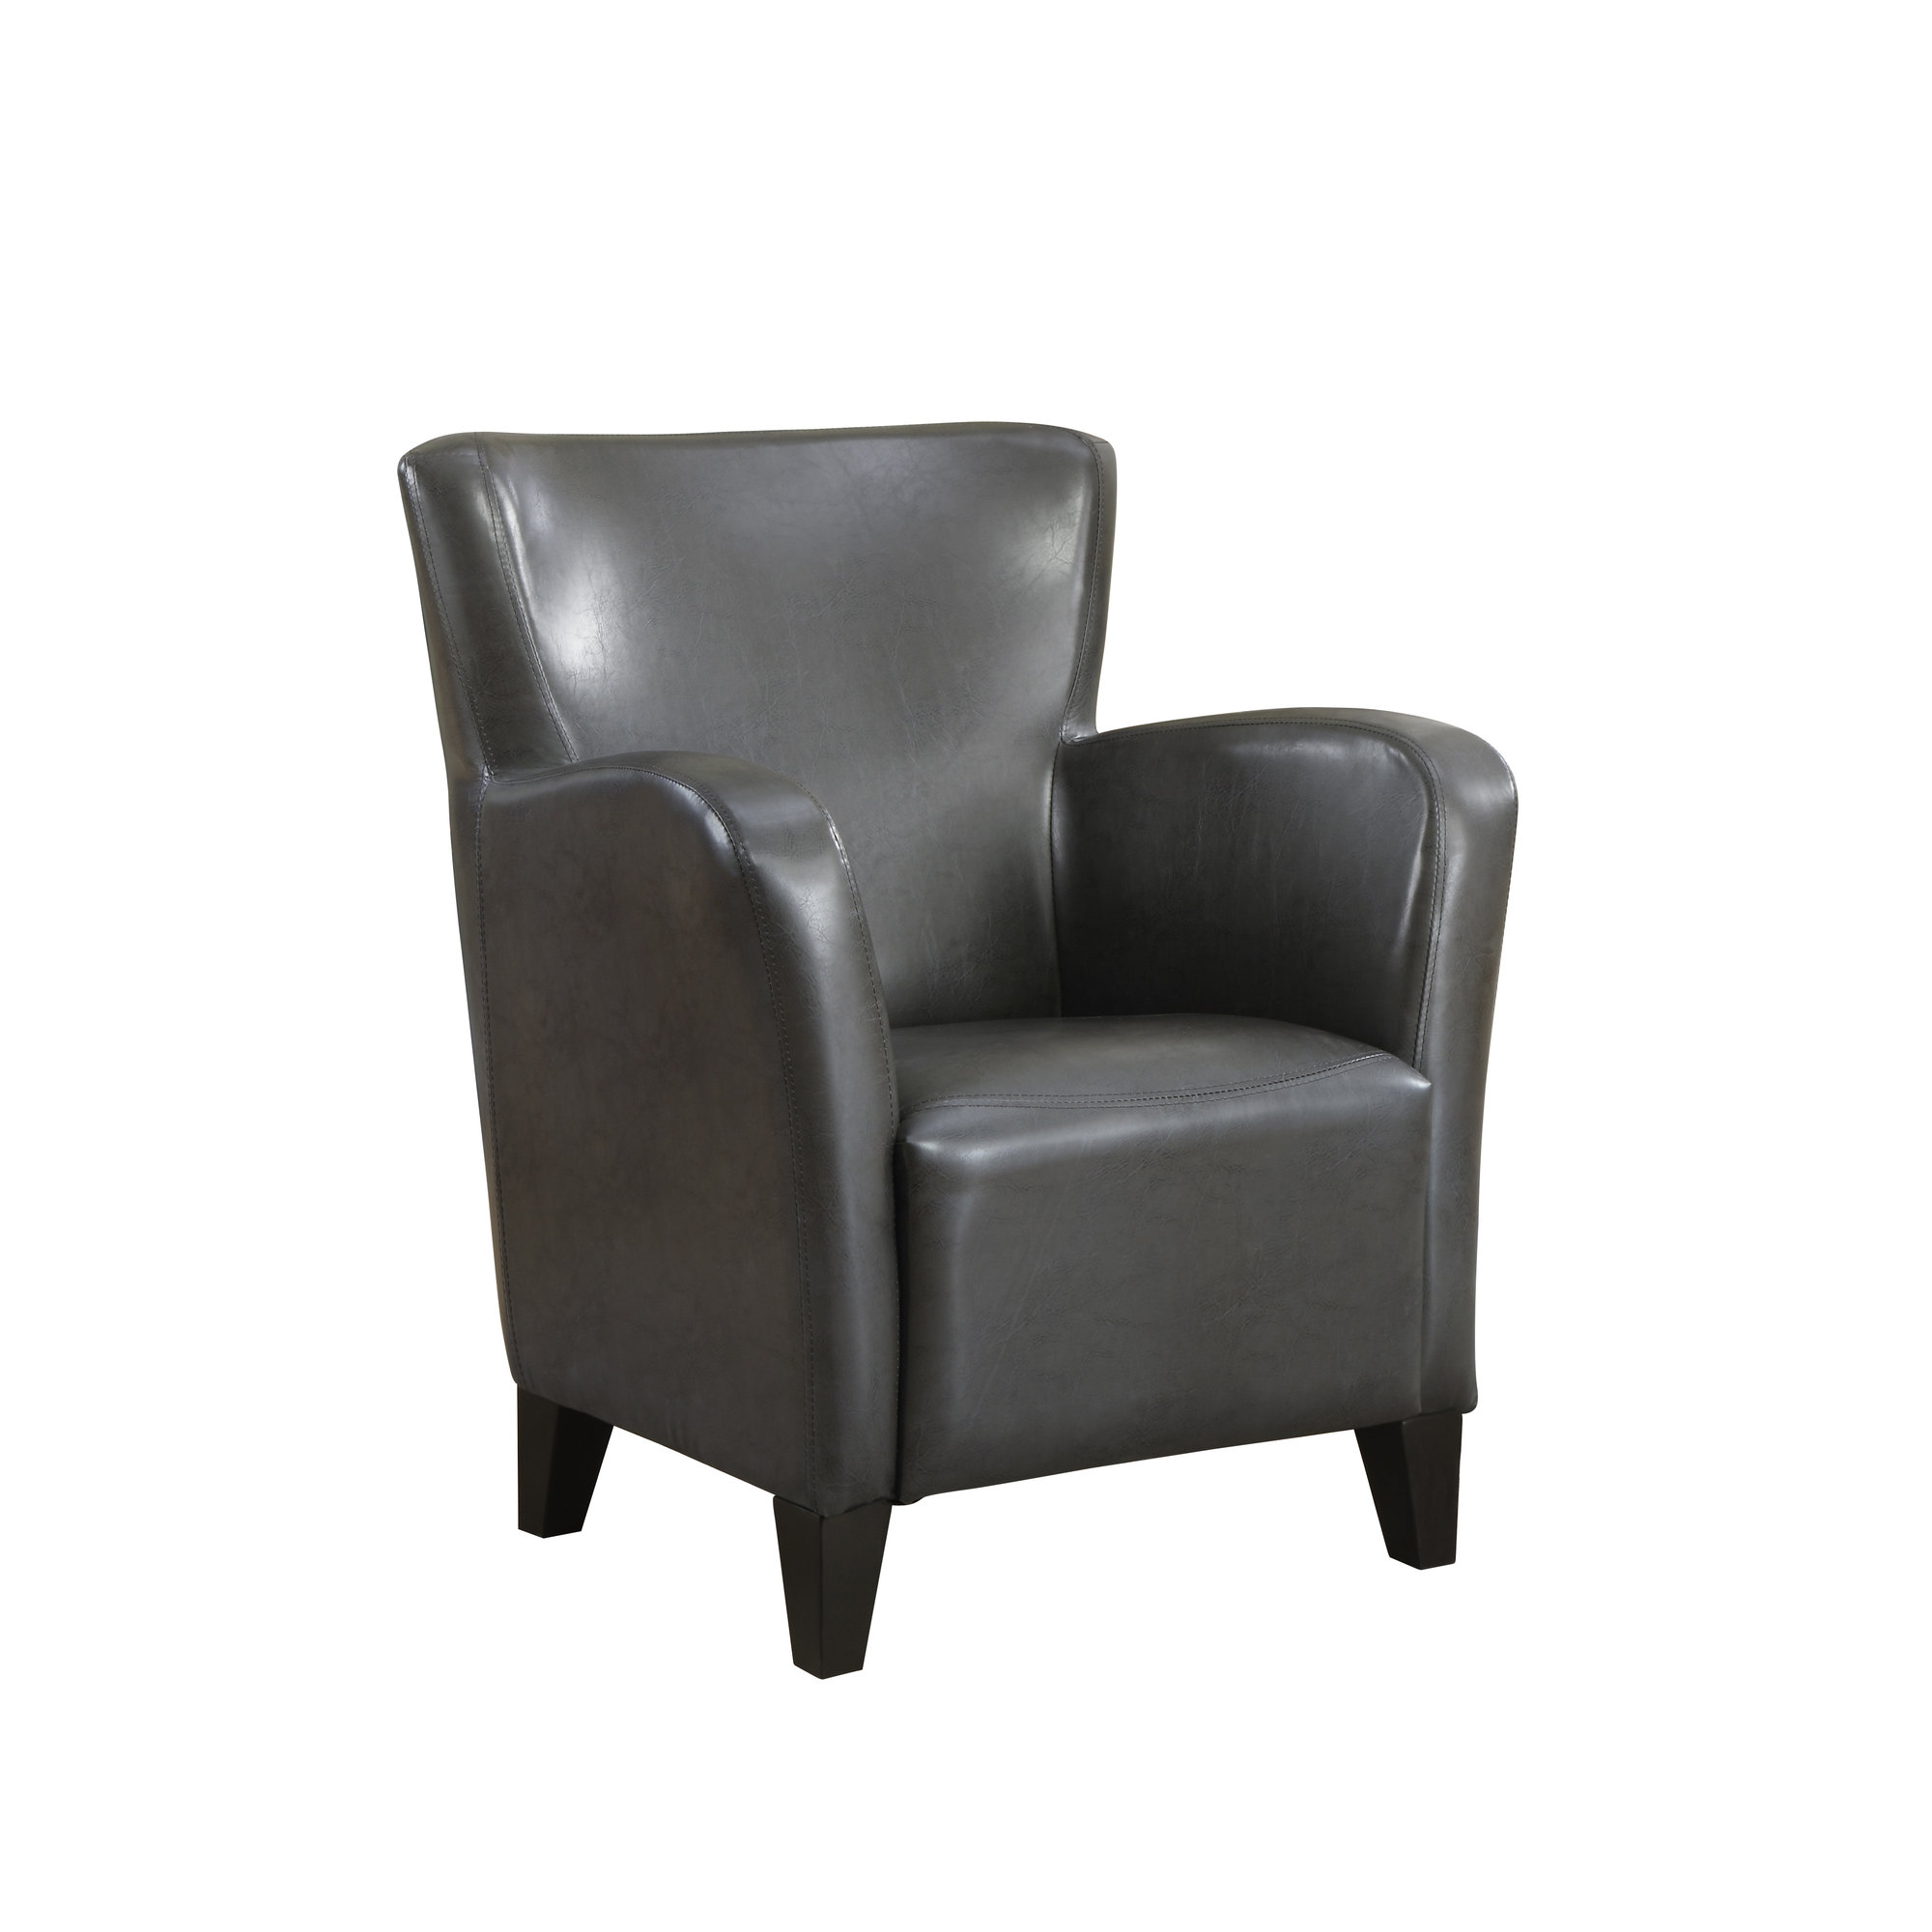 Accent Chair - Charcoal Grey Leather-Look Fabric